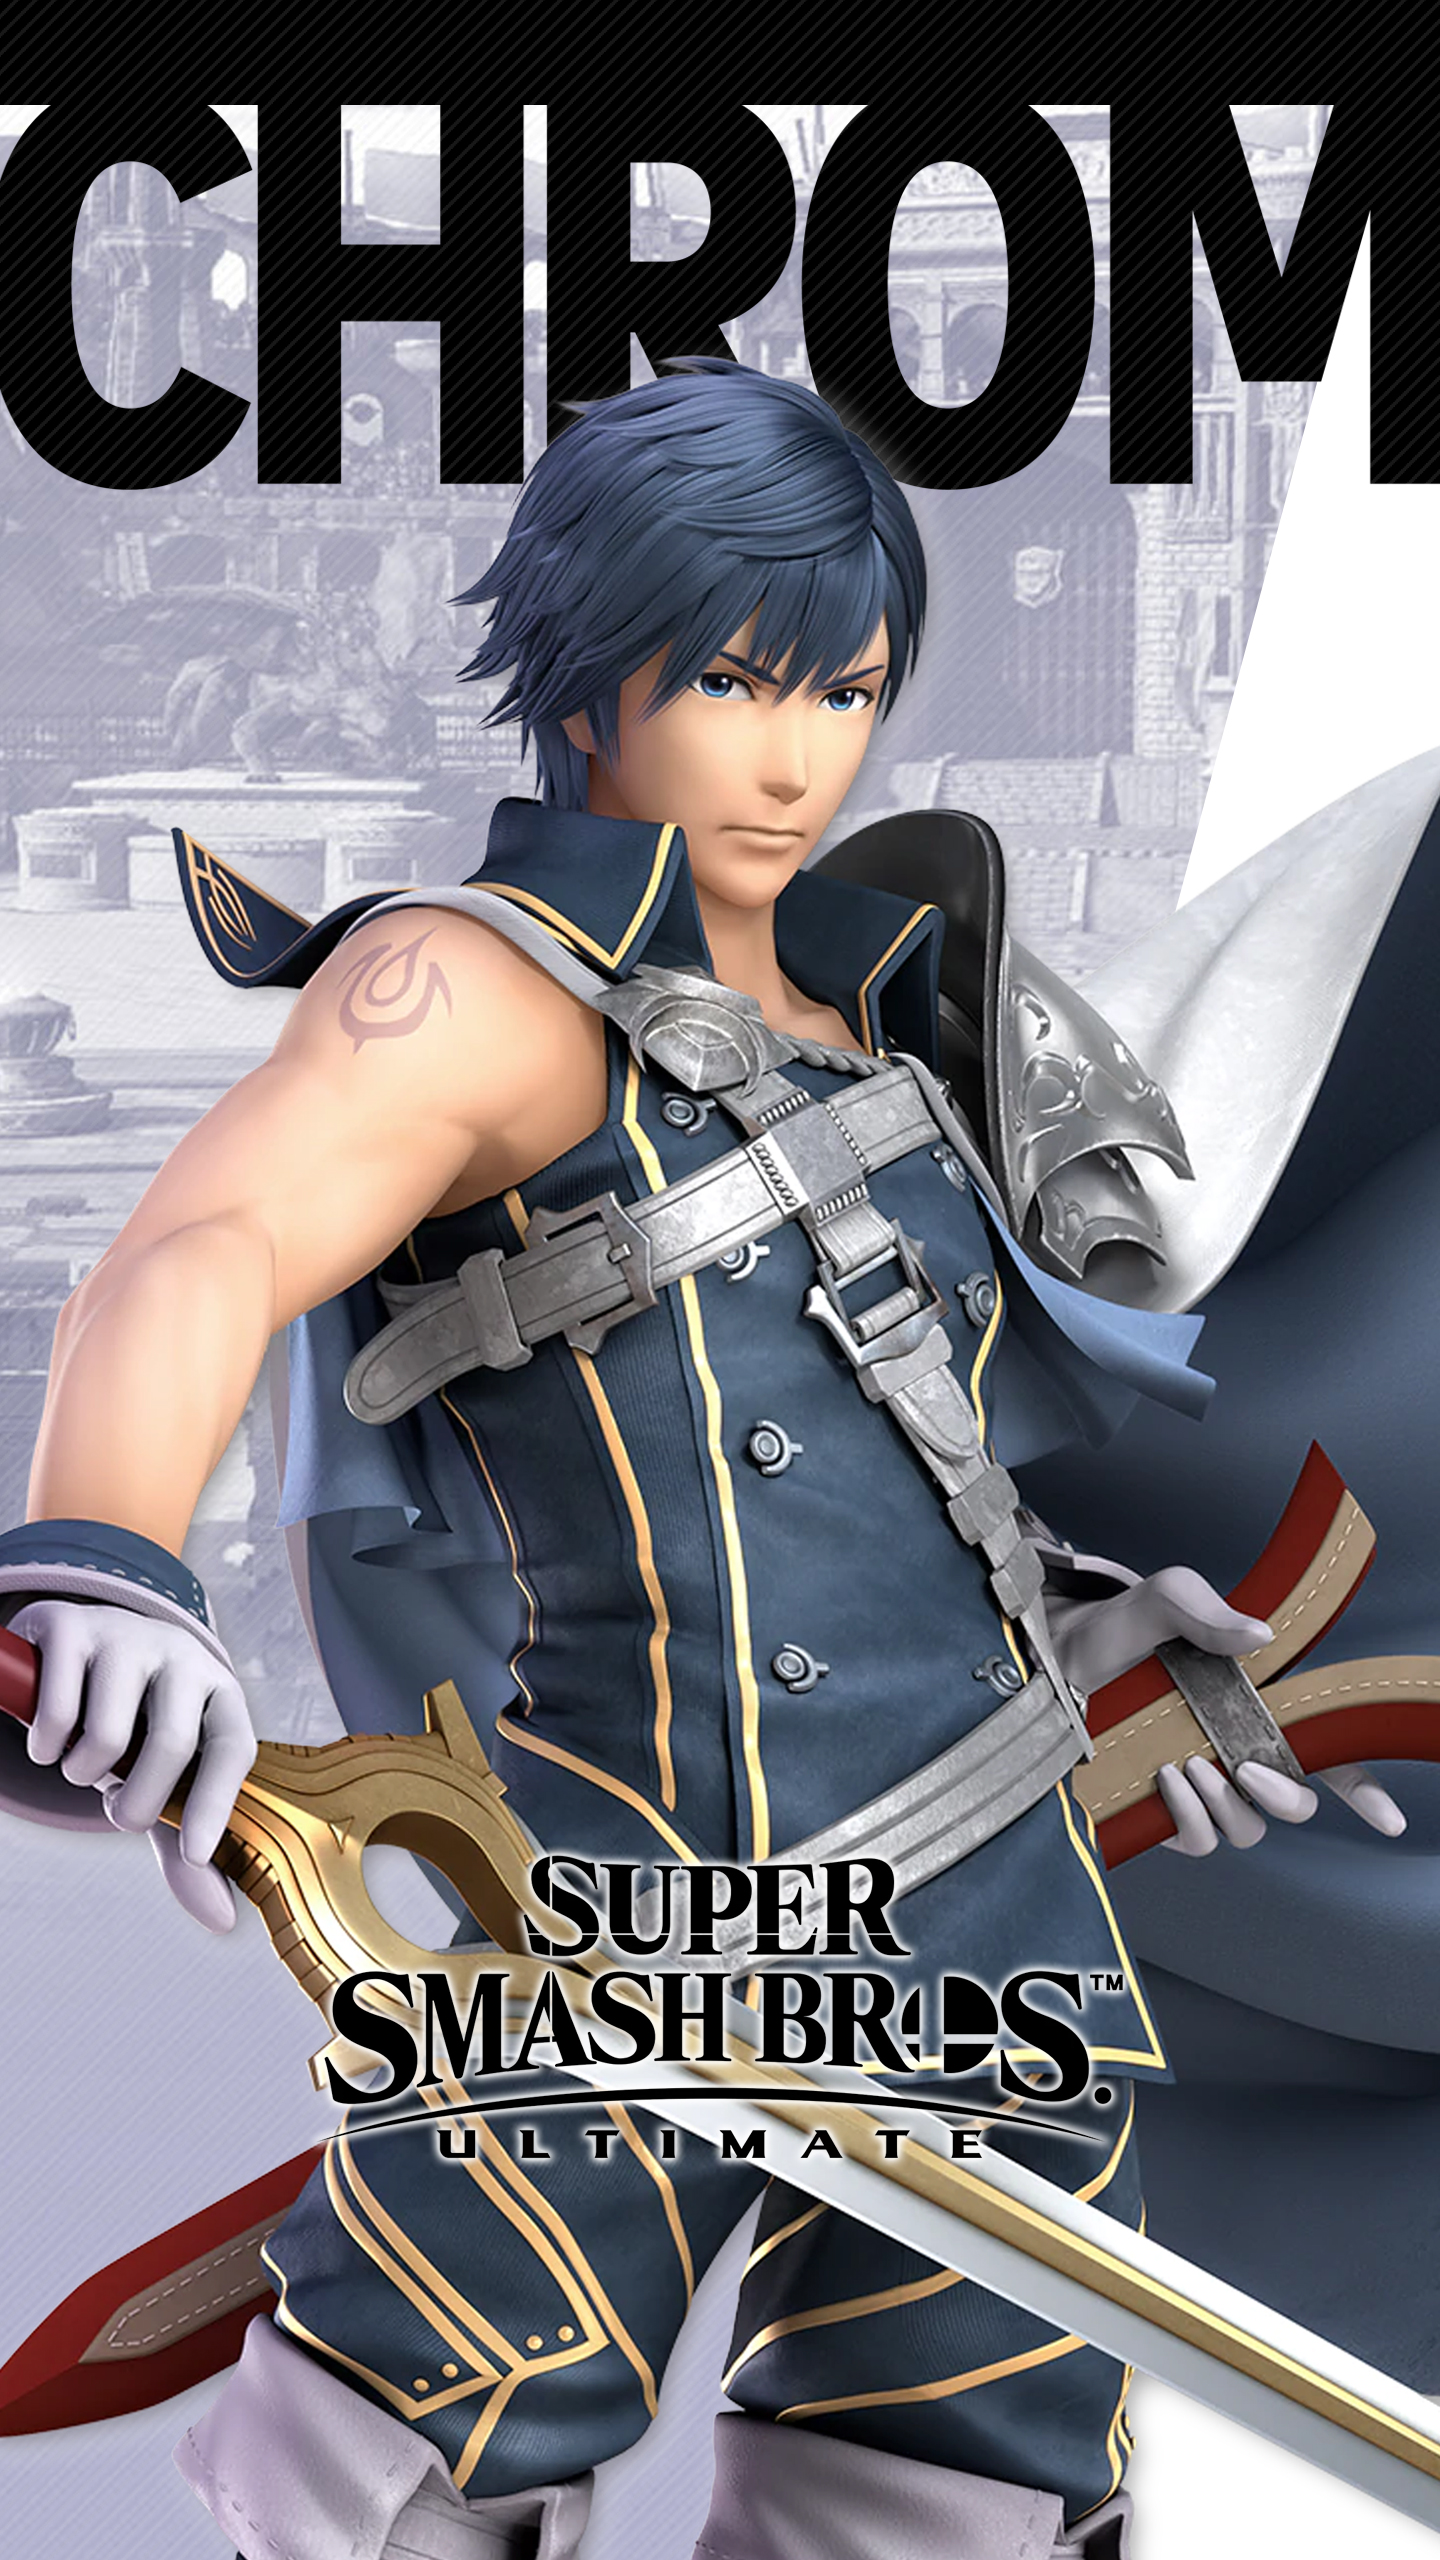 Animated Iphone X Wallpaper Super Smash Bros Ultimate Chrom Wallpapers Cat With Monocle